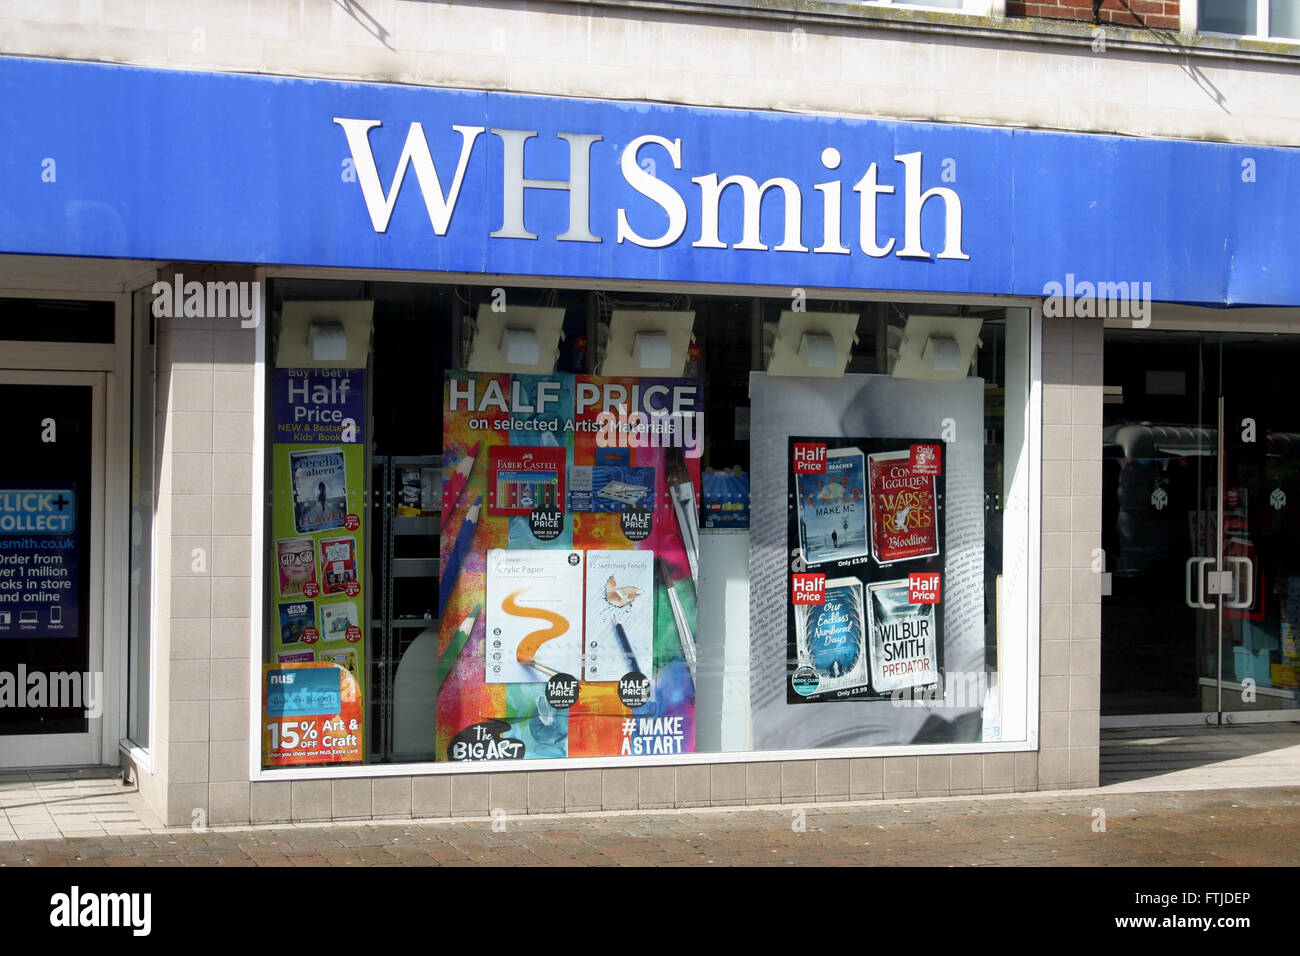 WH SMITH NEWSAGENT SHOP HIGH STREET - Stock Image